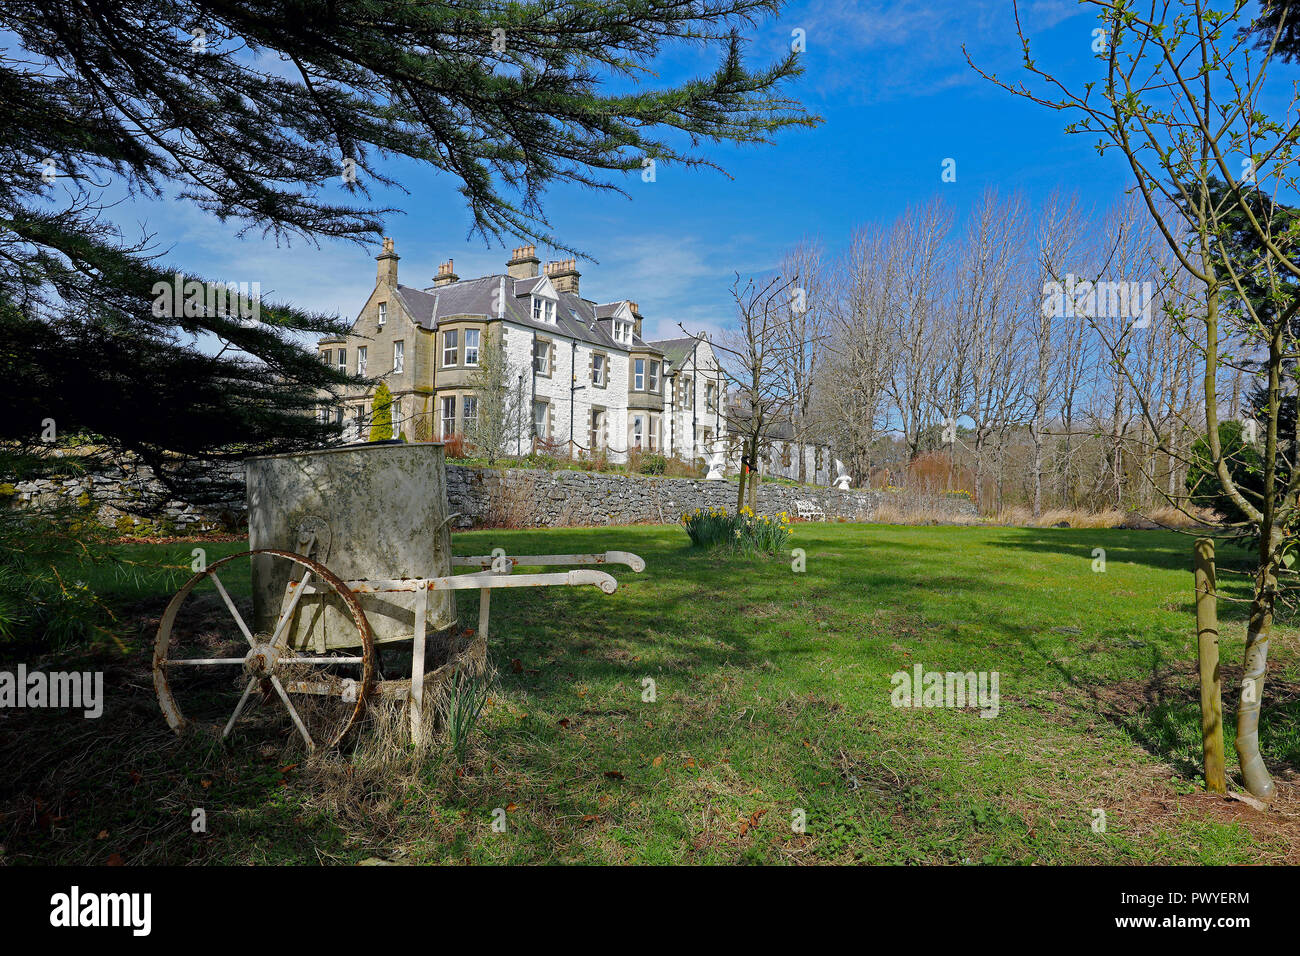 Scottish Country houses. Rathburne House. - Stock Image